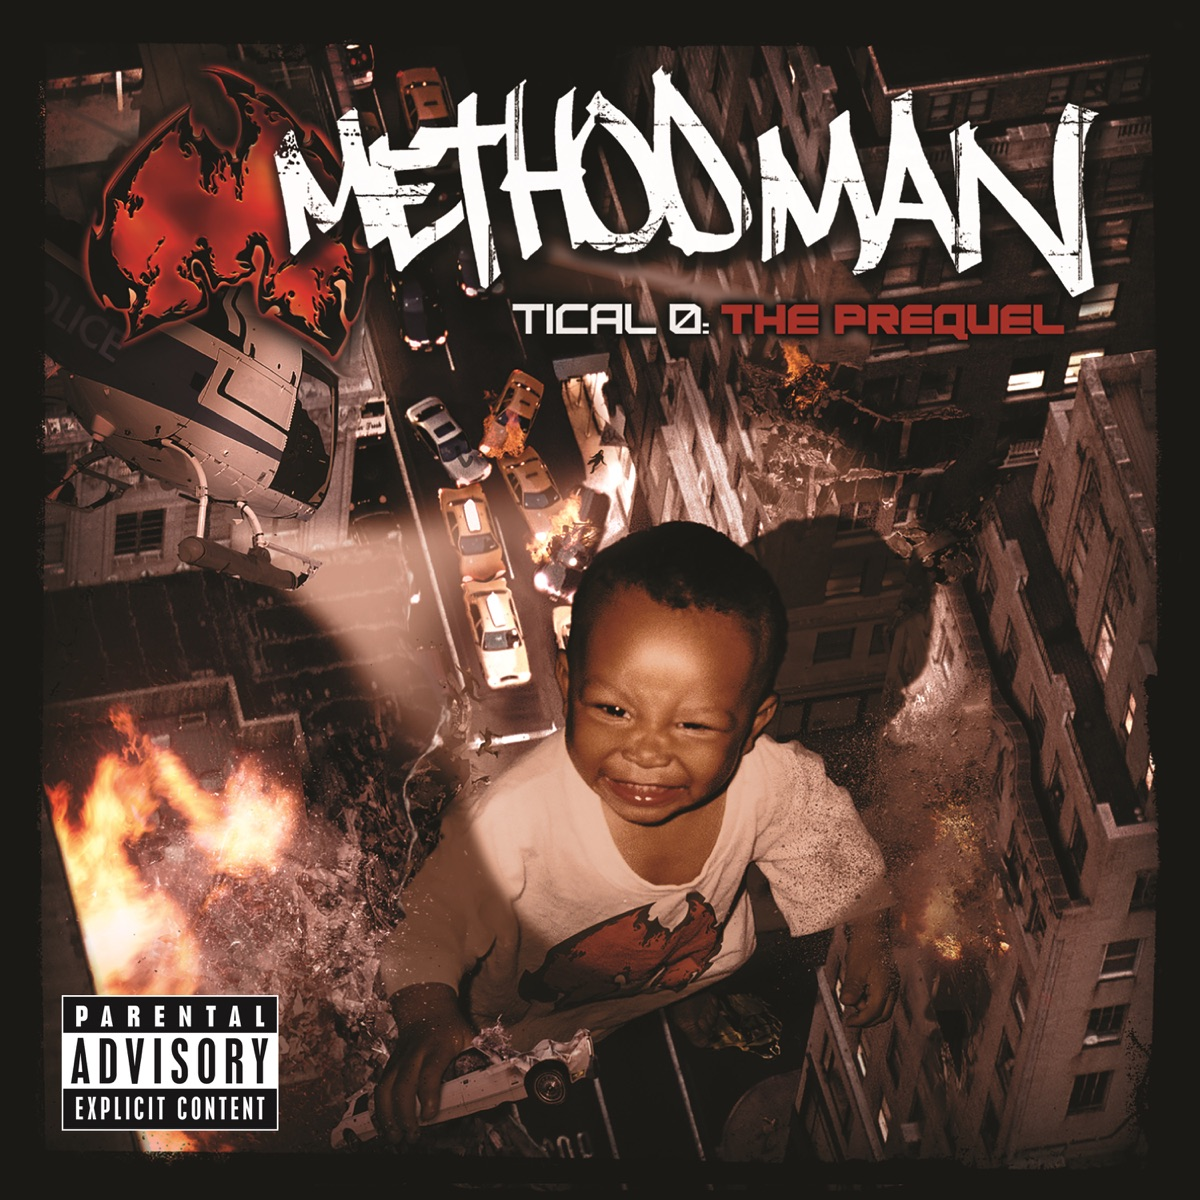 Tical 0 The Prequel Method Man CD cover